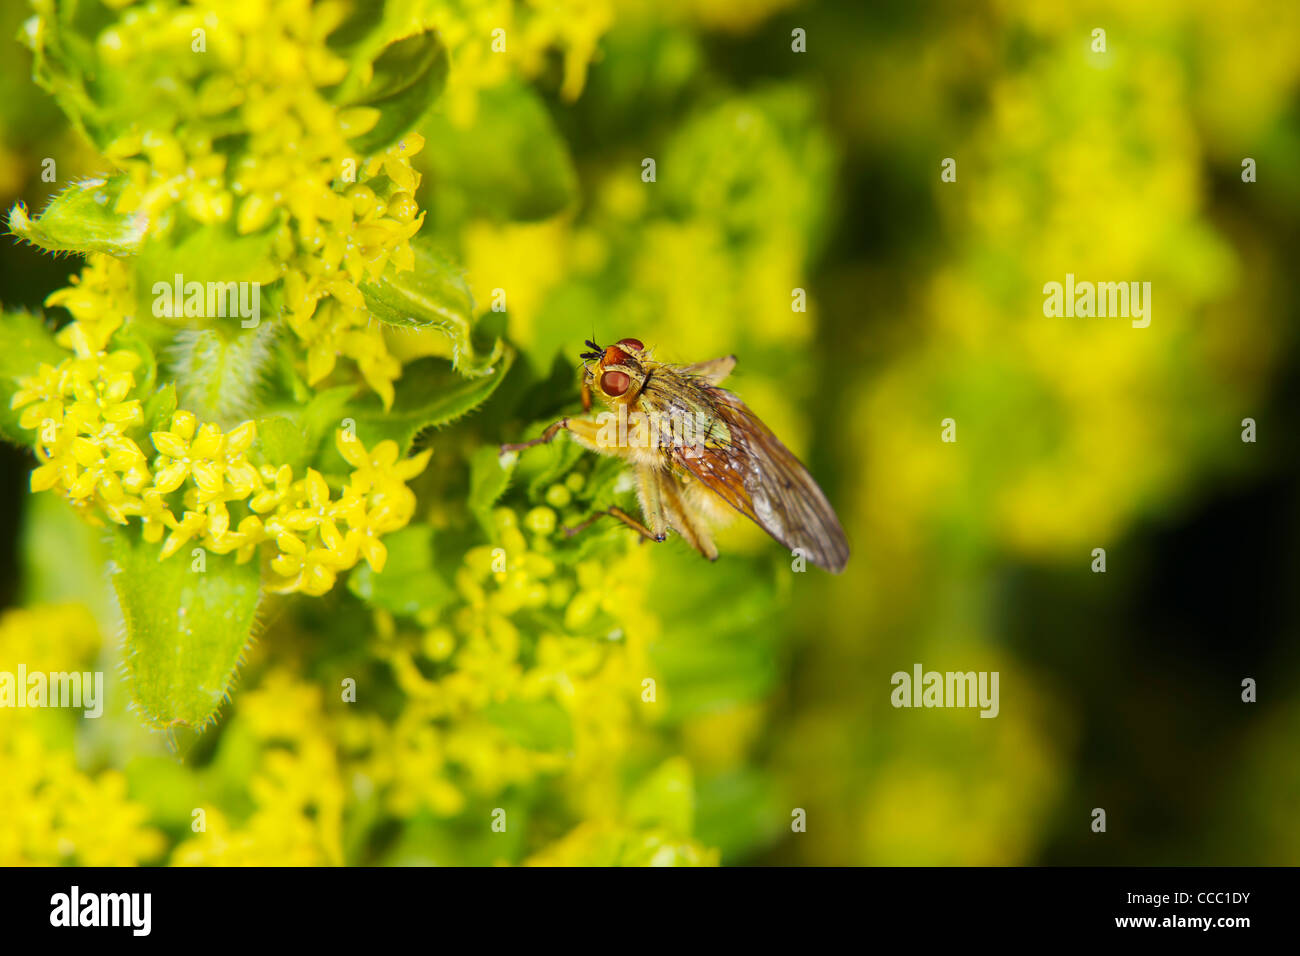 Yellow dung fly (Scathophaga stercoraria) - Stock Image